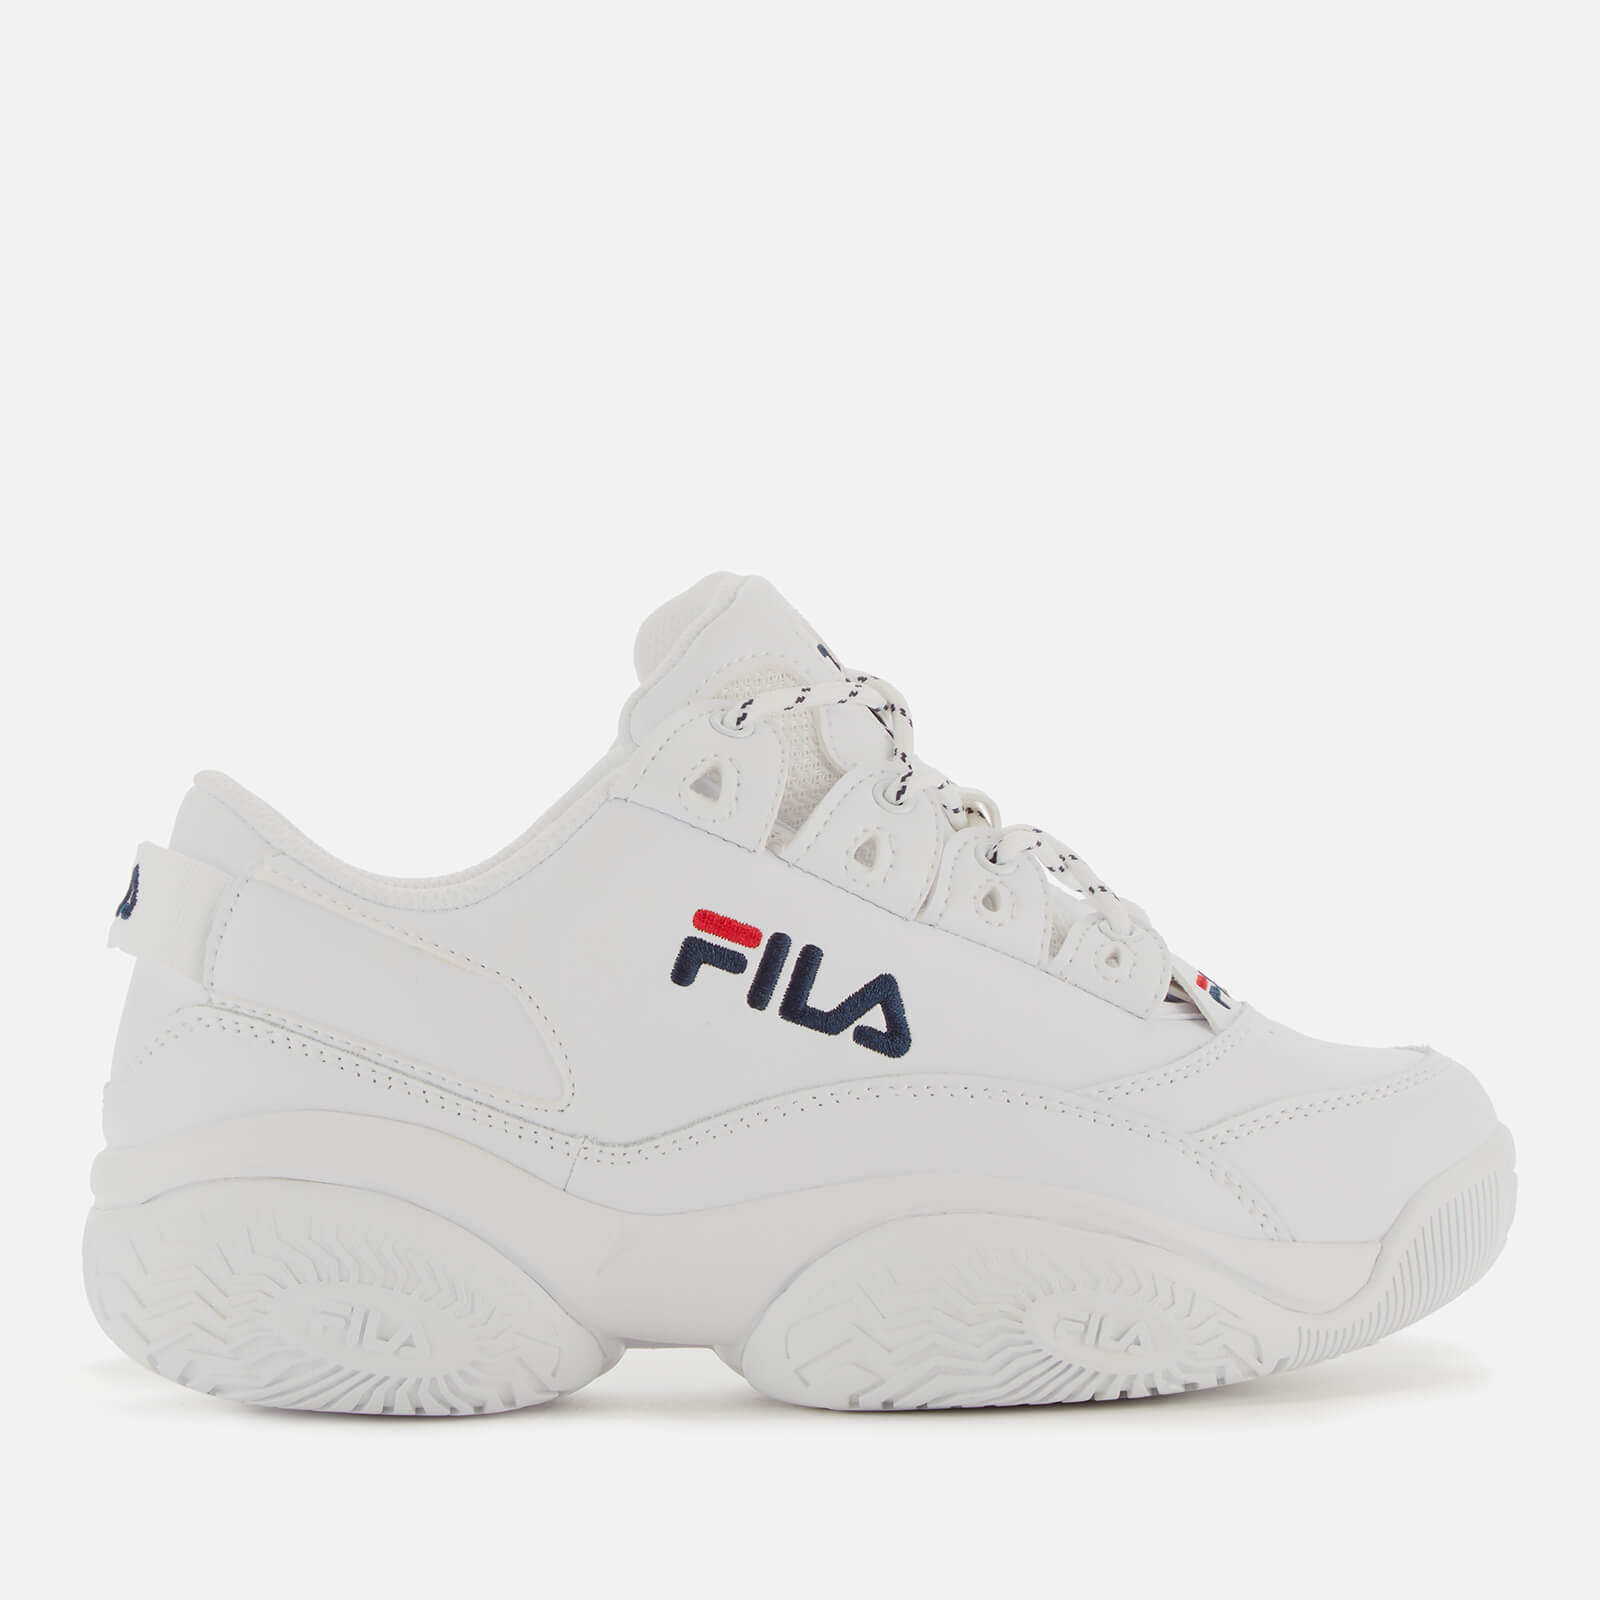 FILA Women's Provenance Trainers - White/FILA Navy/Red